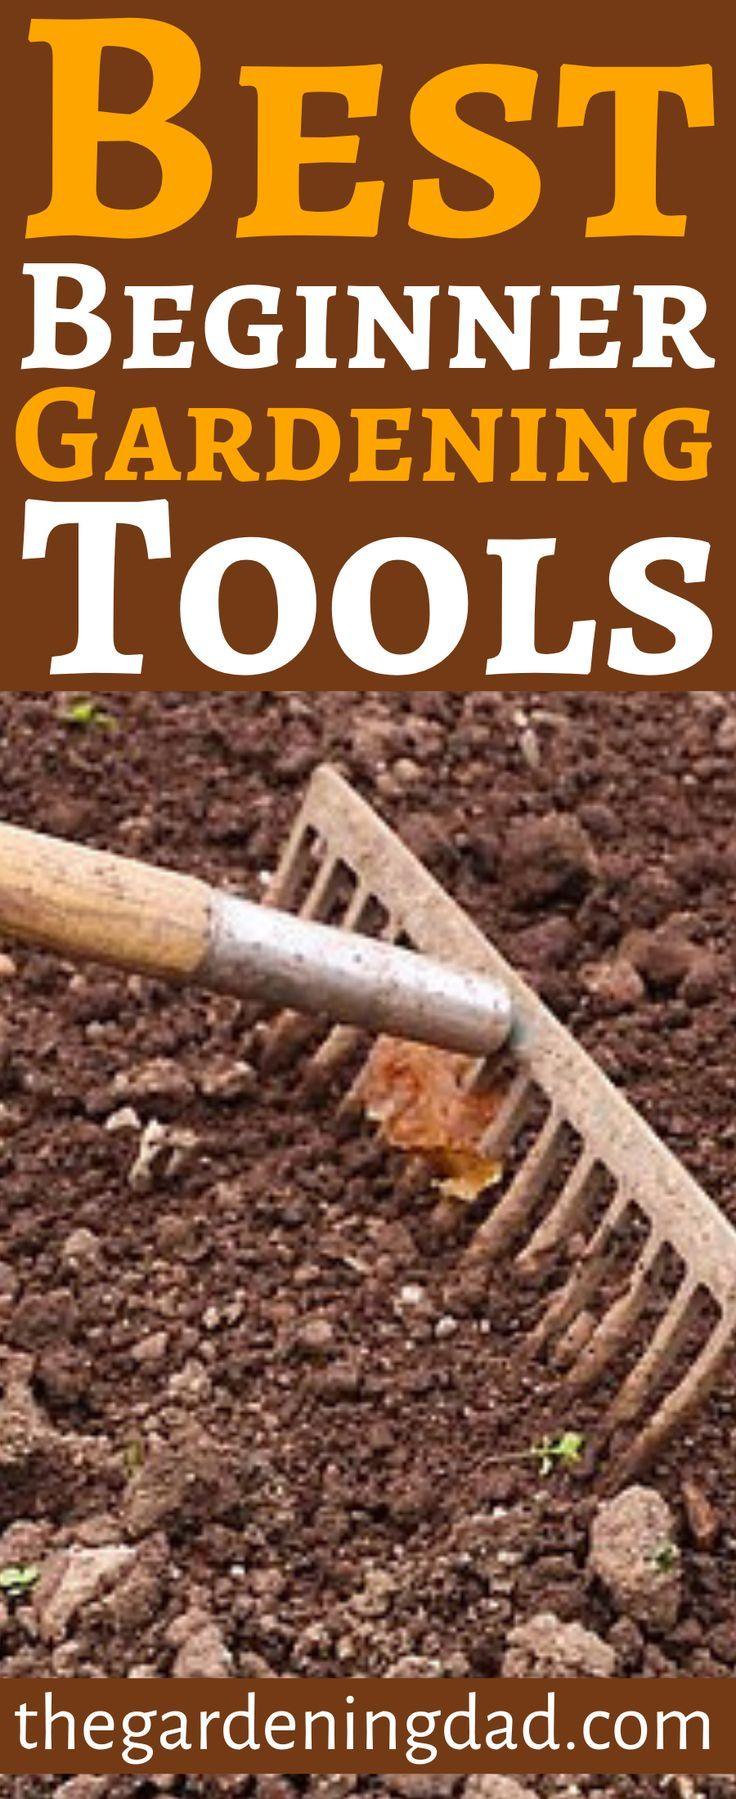 25 Best Gardening Tools You CANNOT Live Without